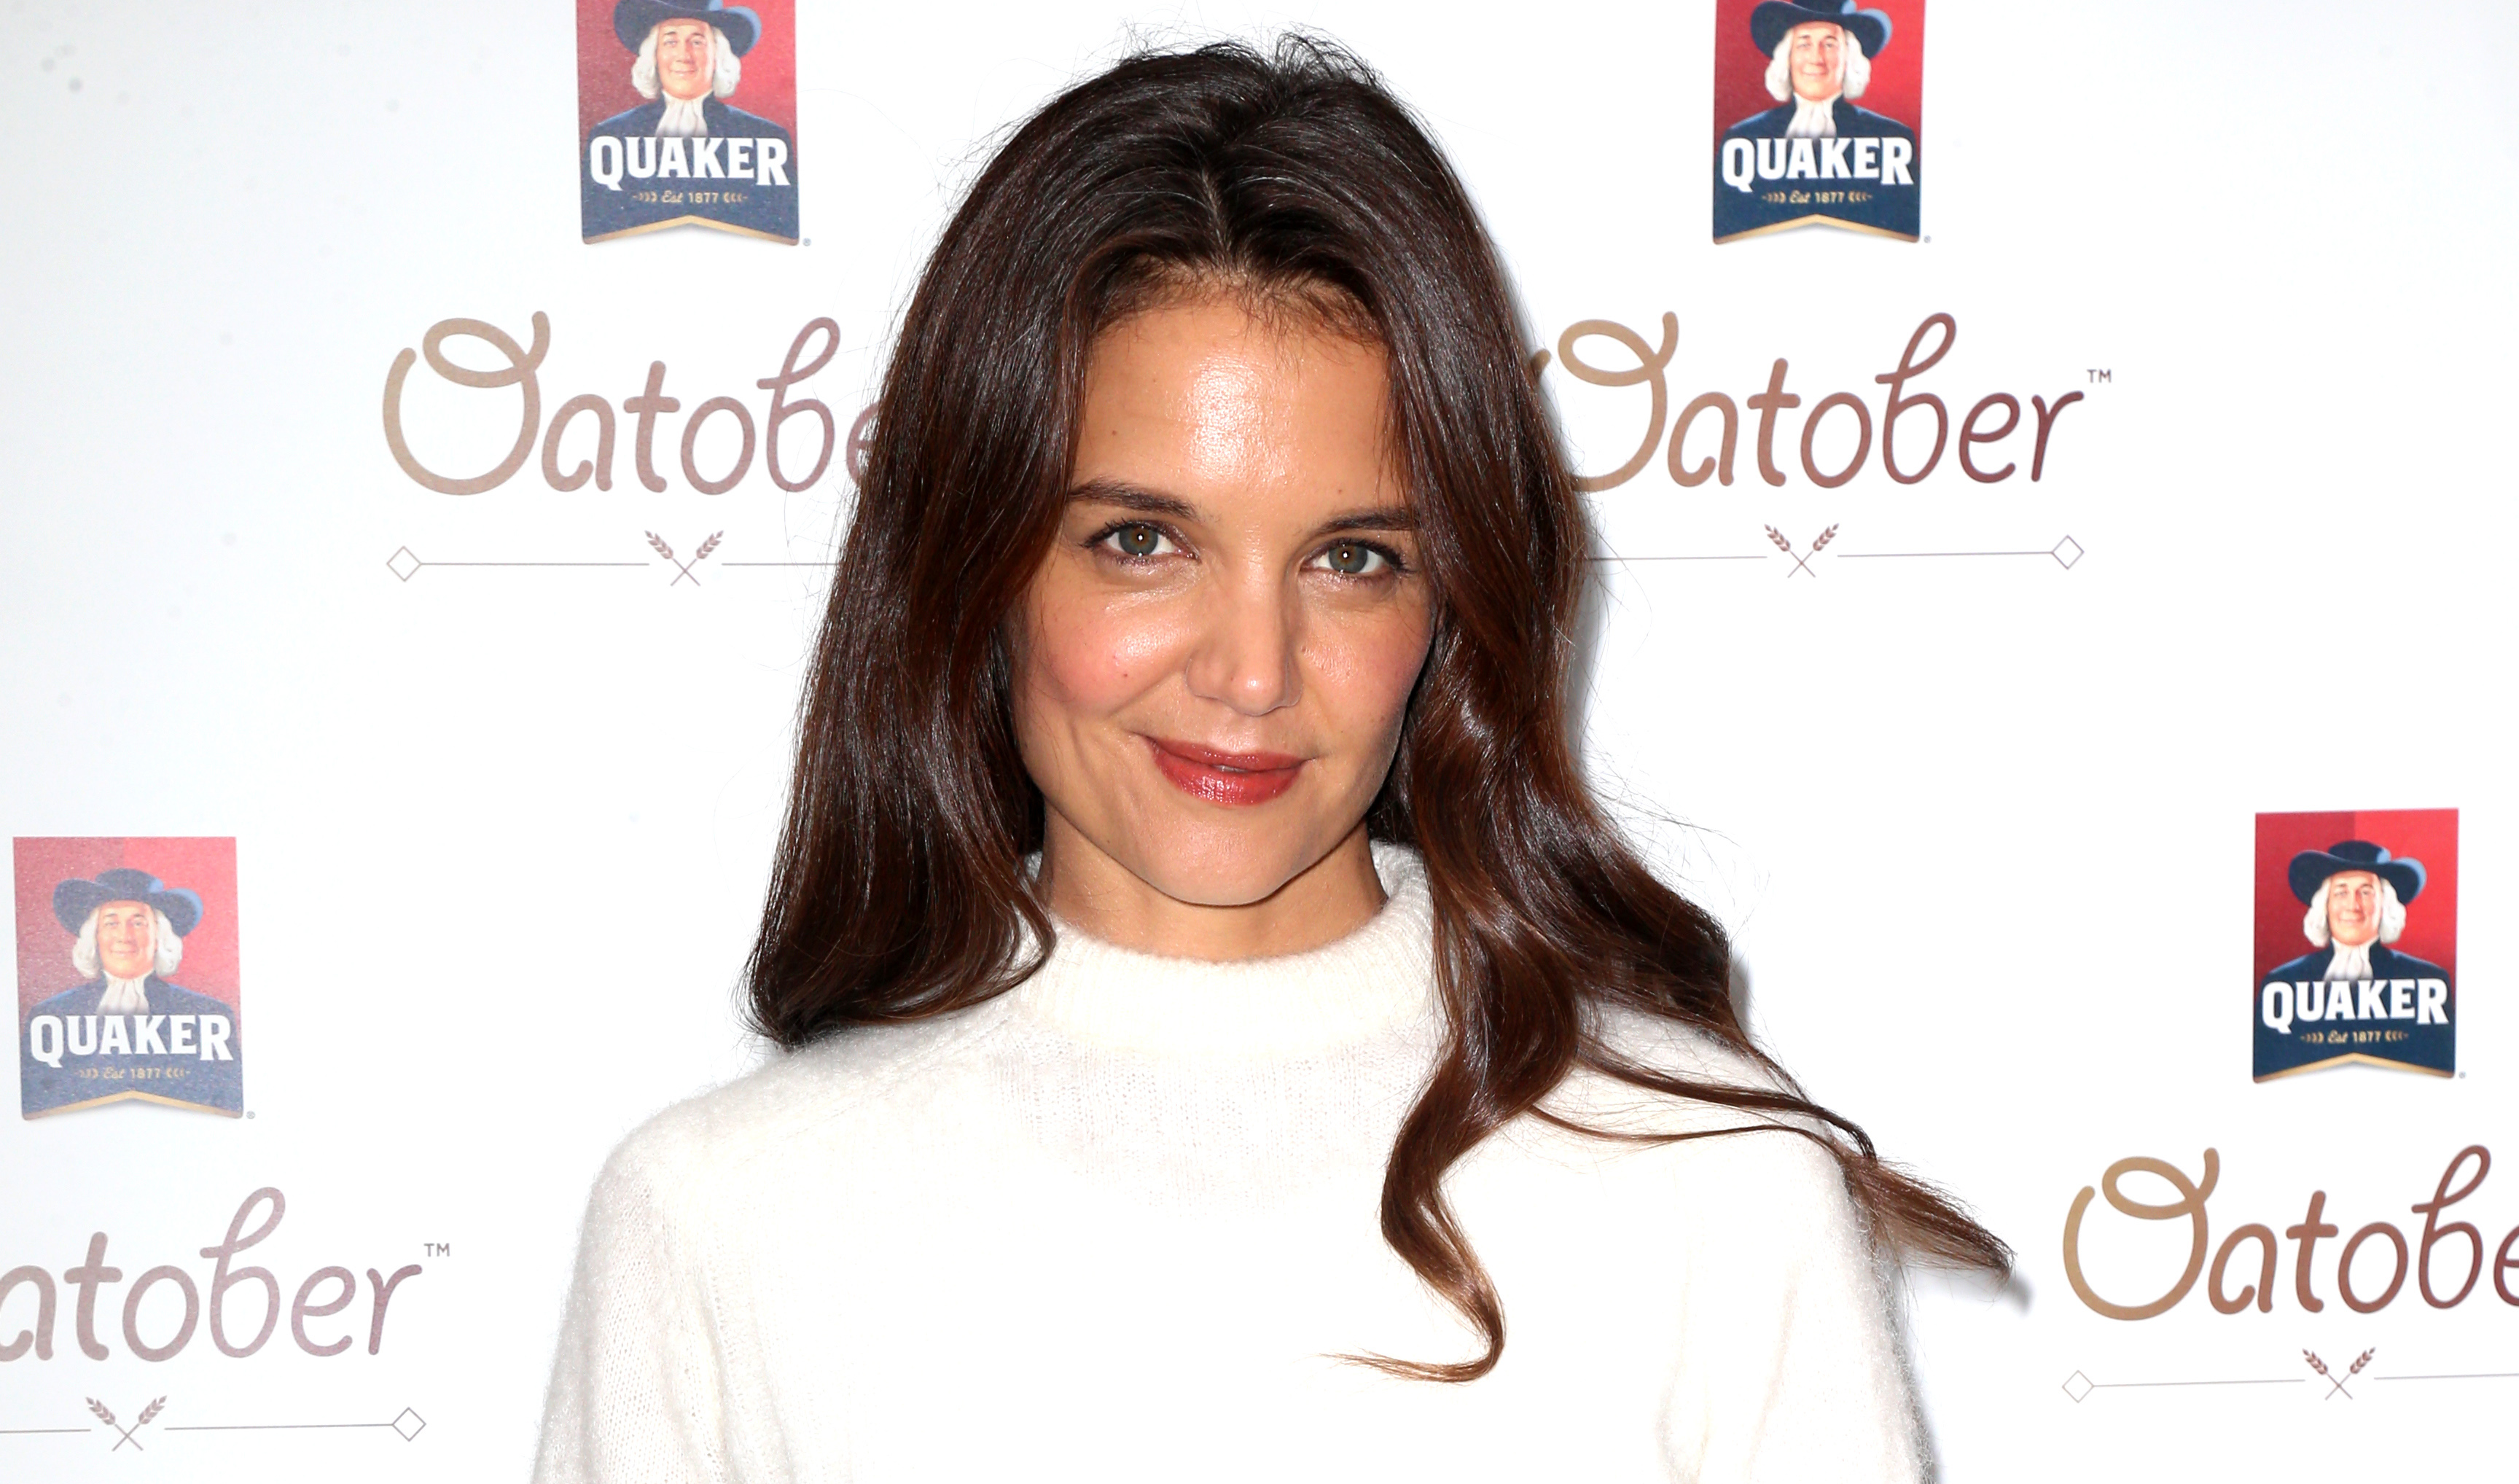 Jamie Foxx and Katie Holmes Allegedly End Their 3-Year